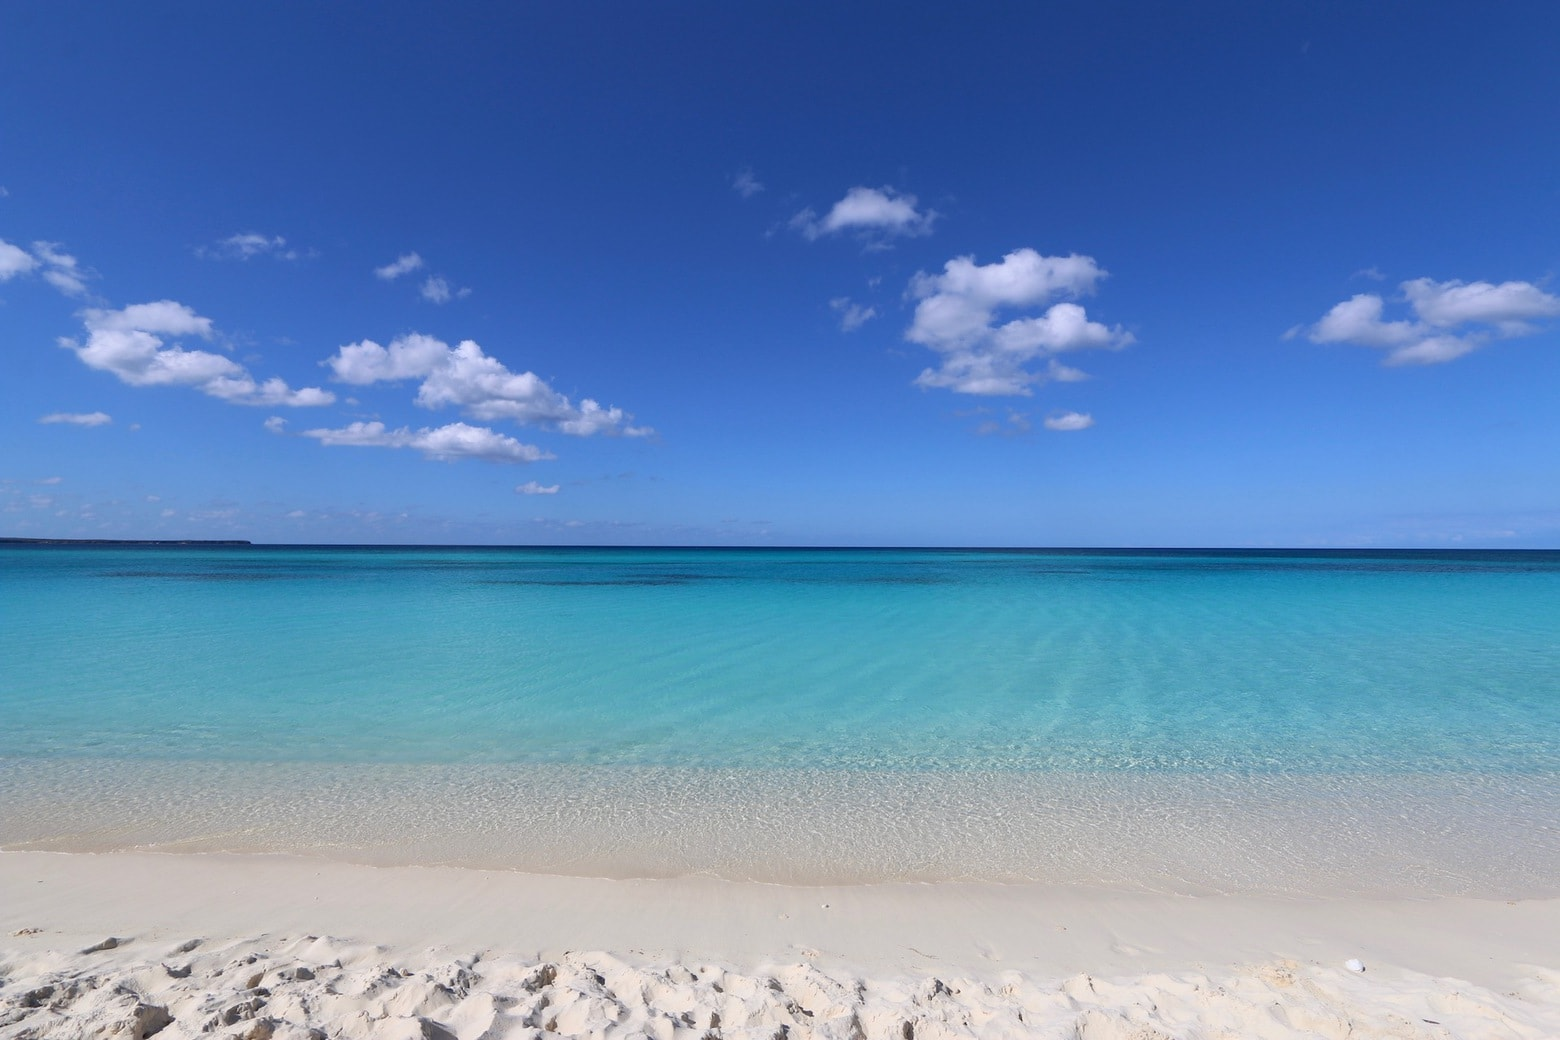 One of the best beaches in the world